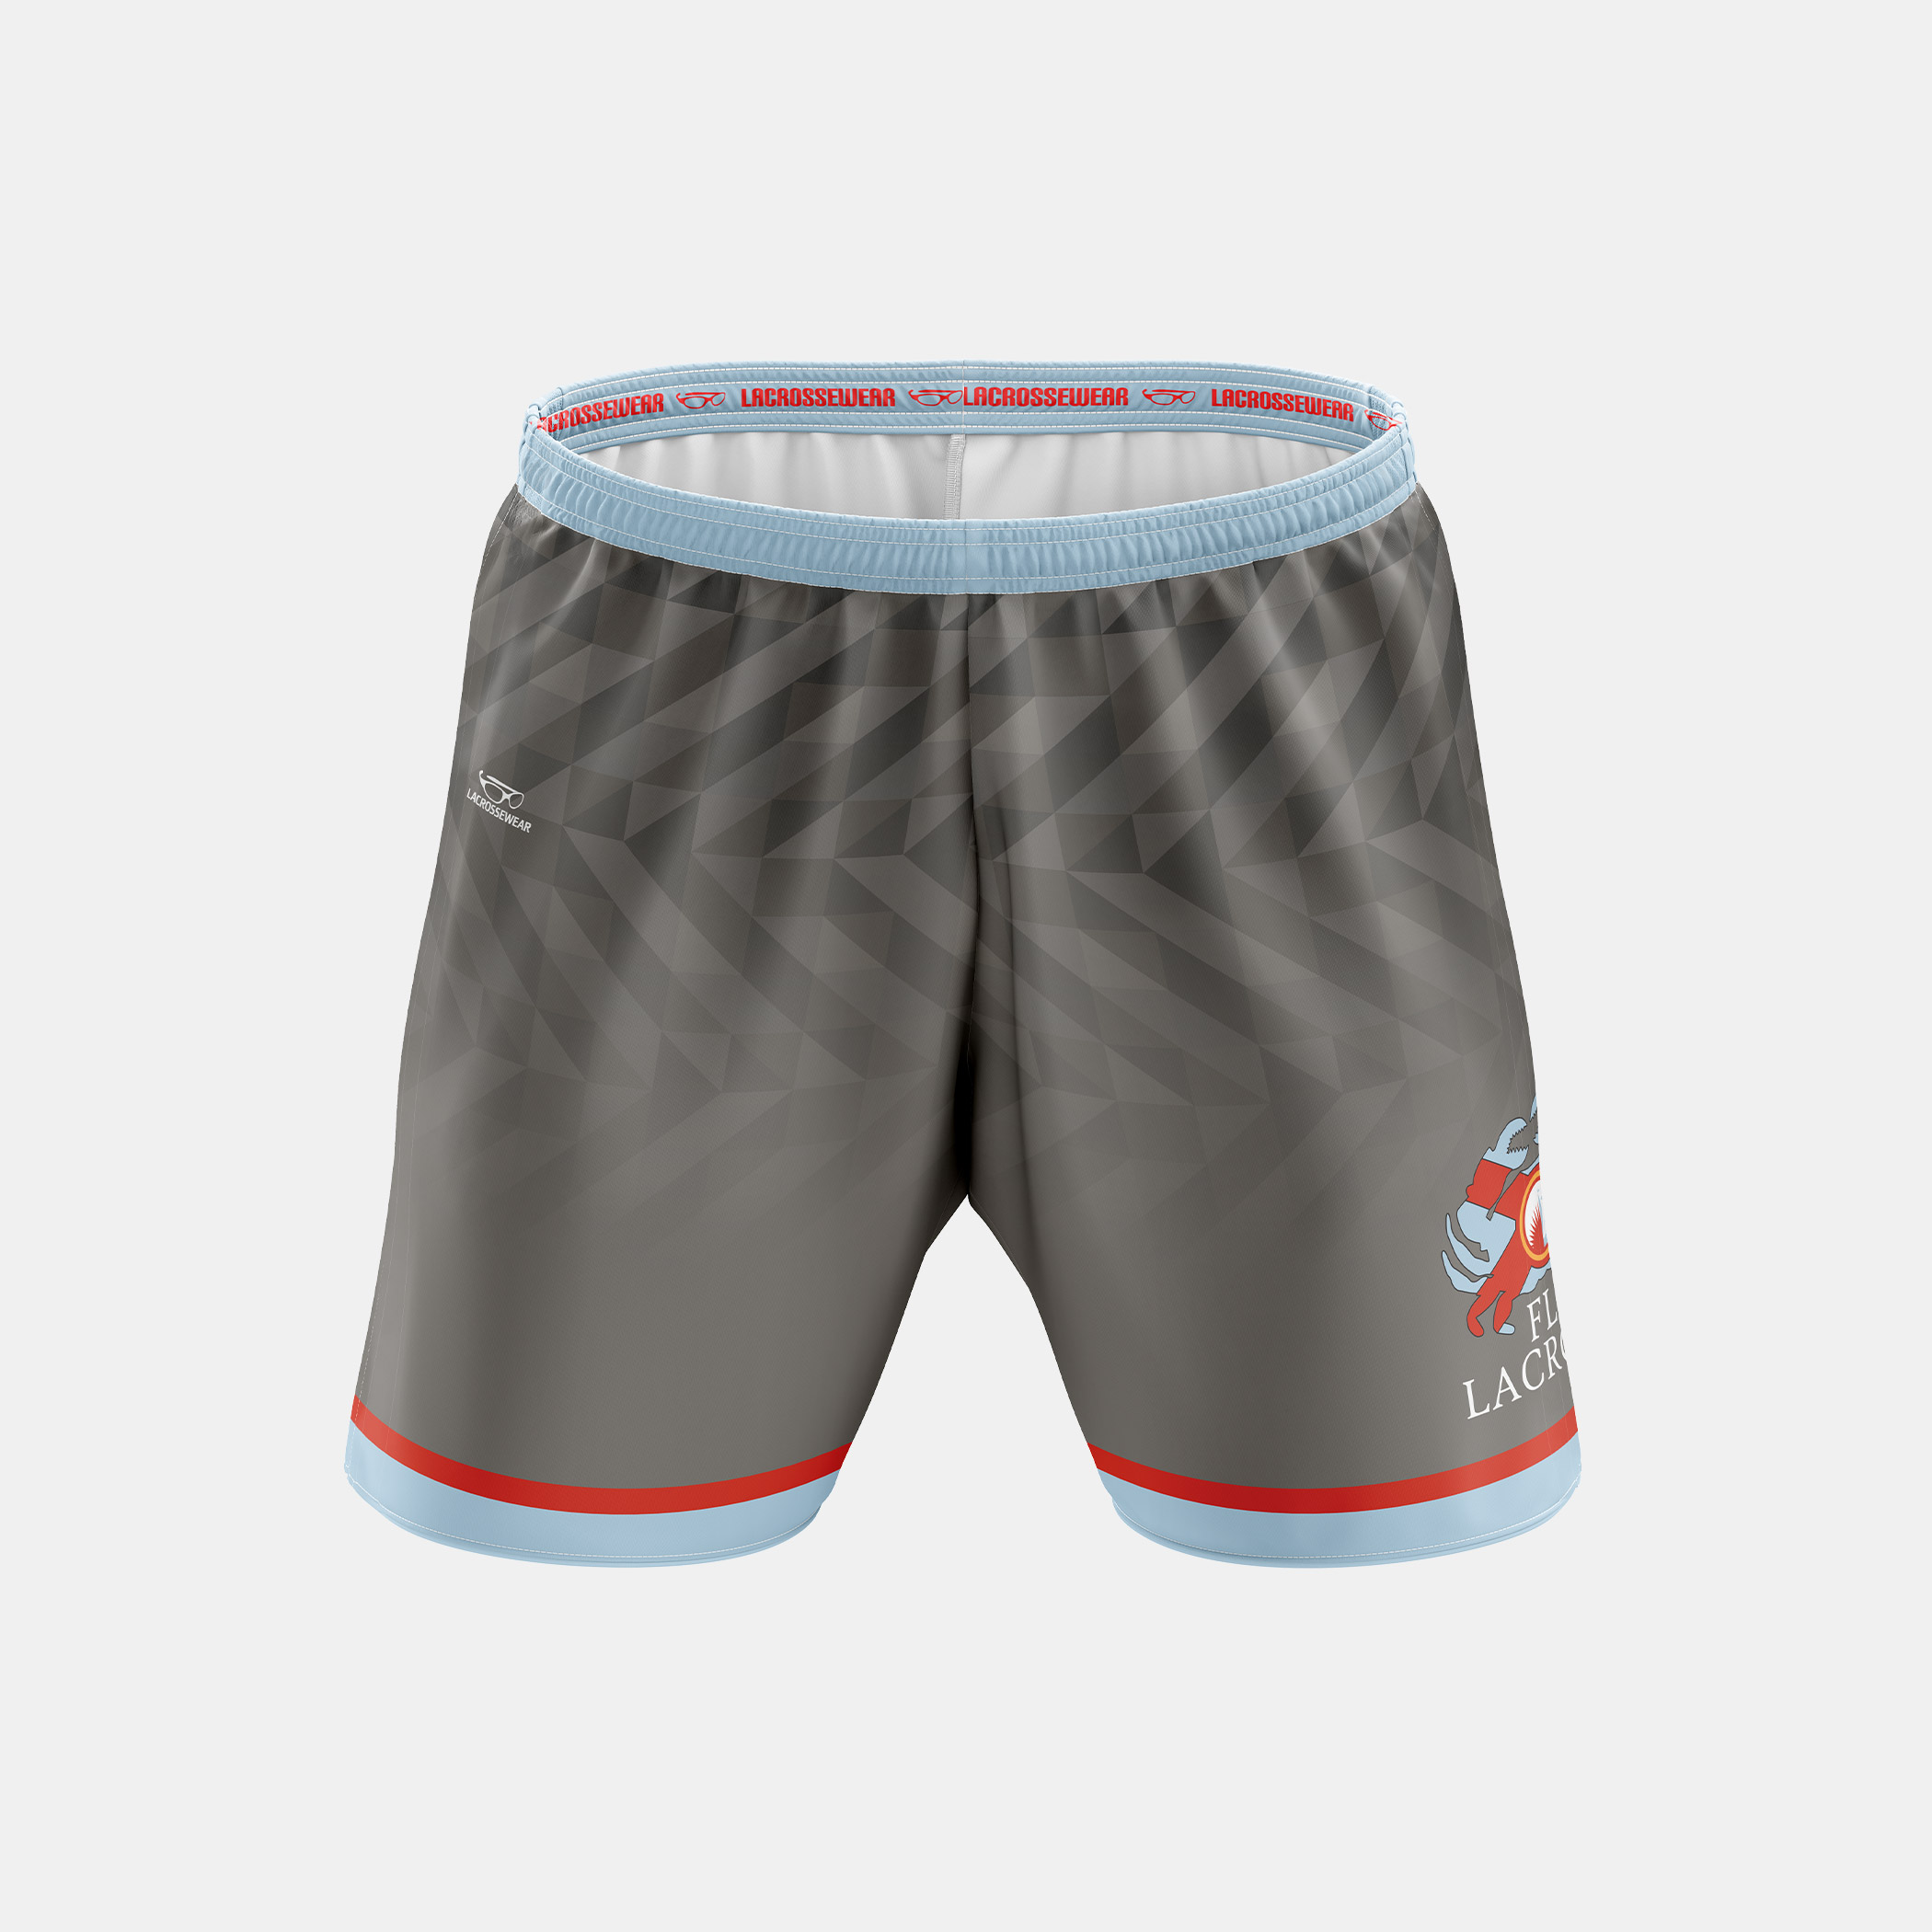 Prototype Shorts Front View